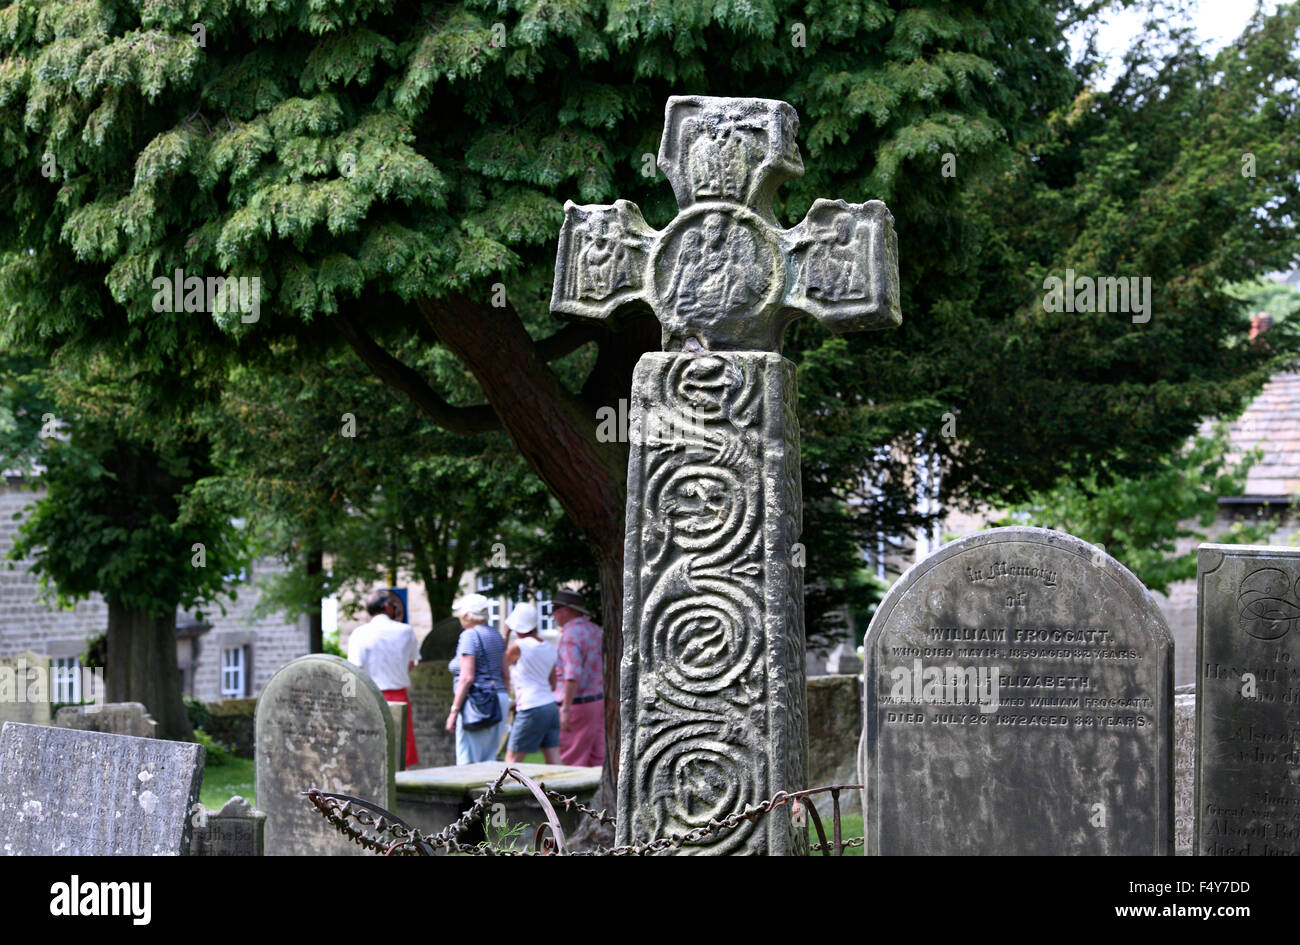 Eyam Cross, an early 9th century Saxon stone cross in the churchyard of St Lawrence's Church, Eyam, Derbyshire. - Stock Image